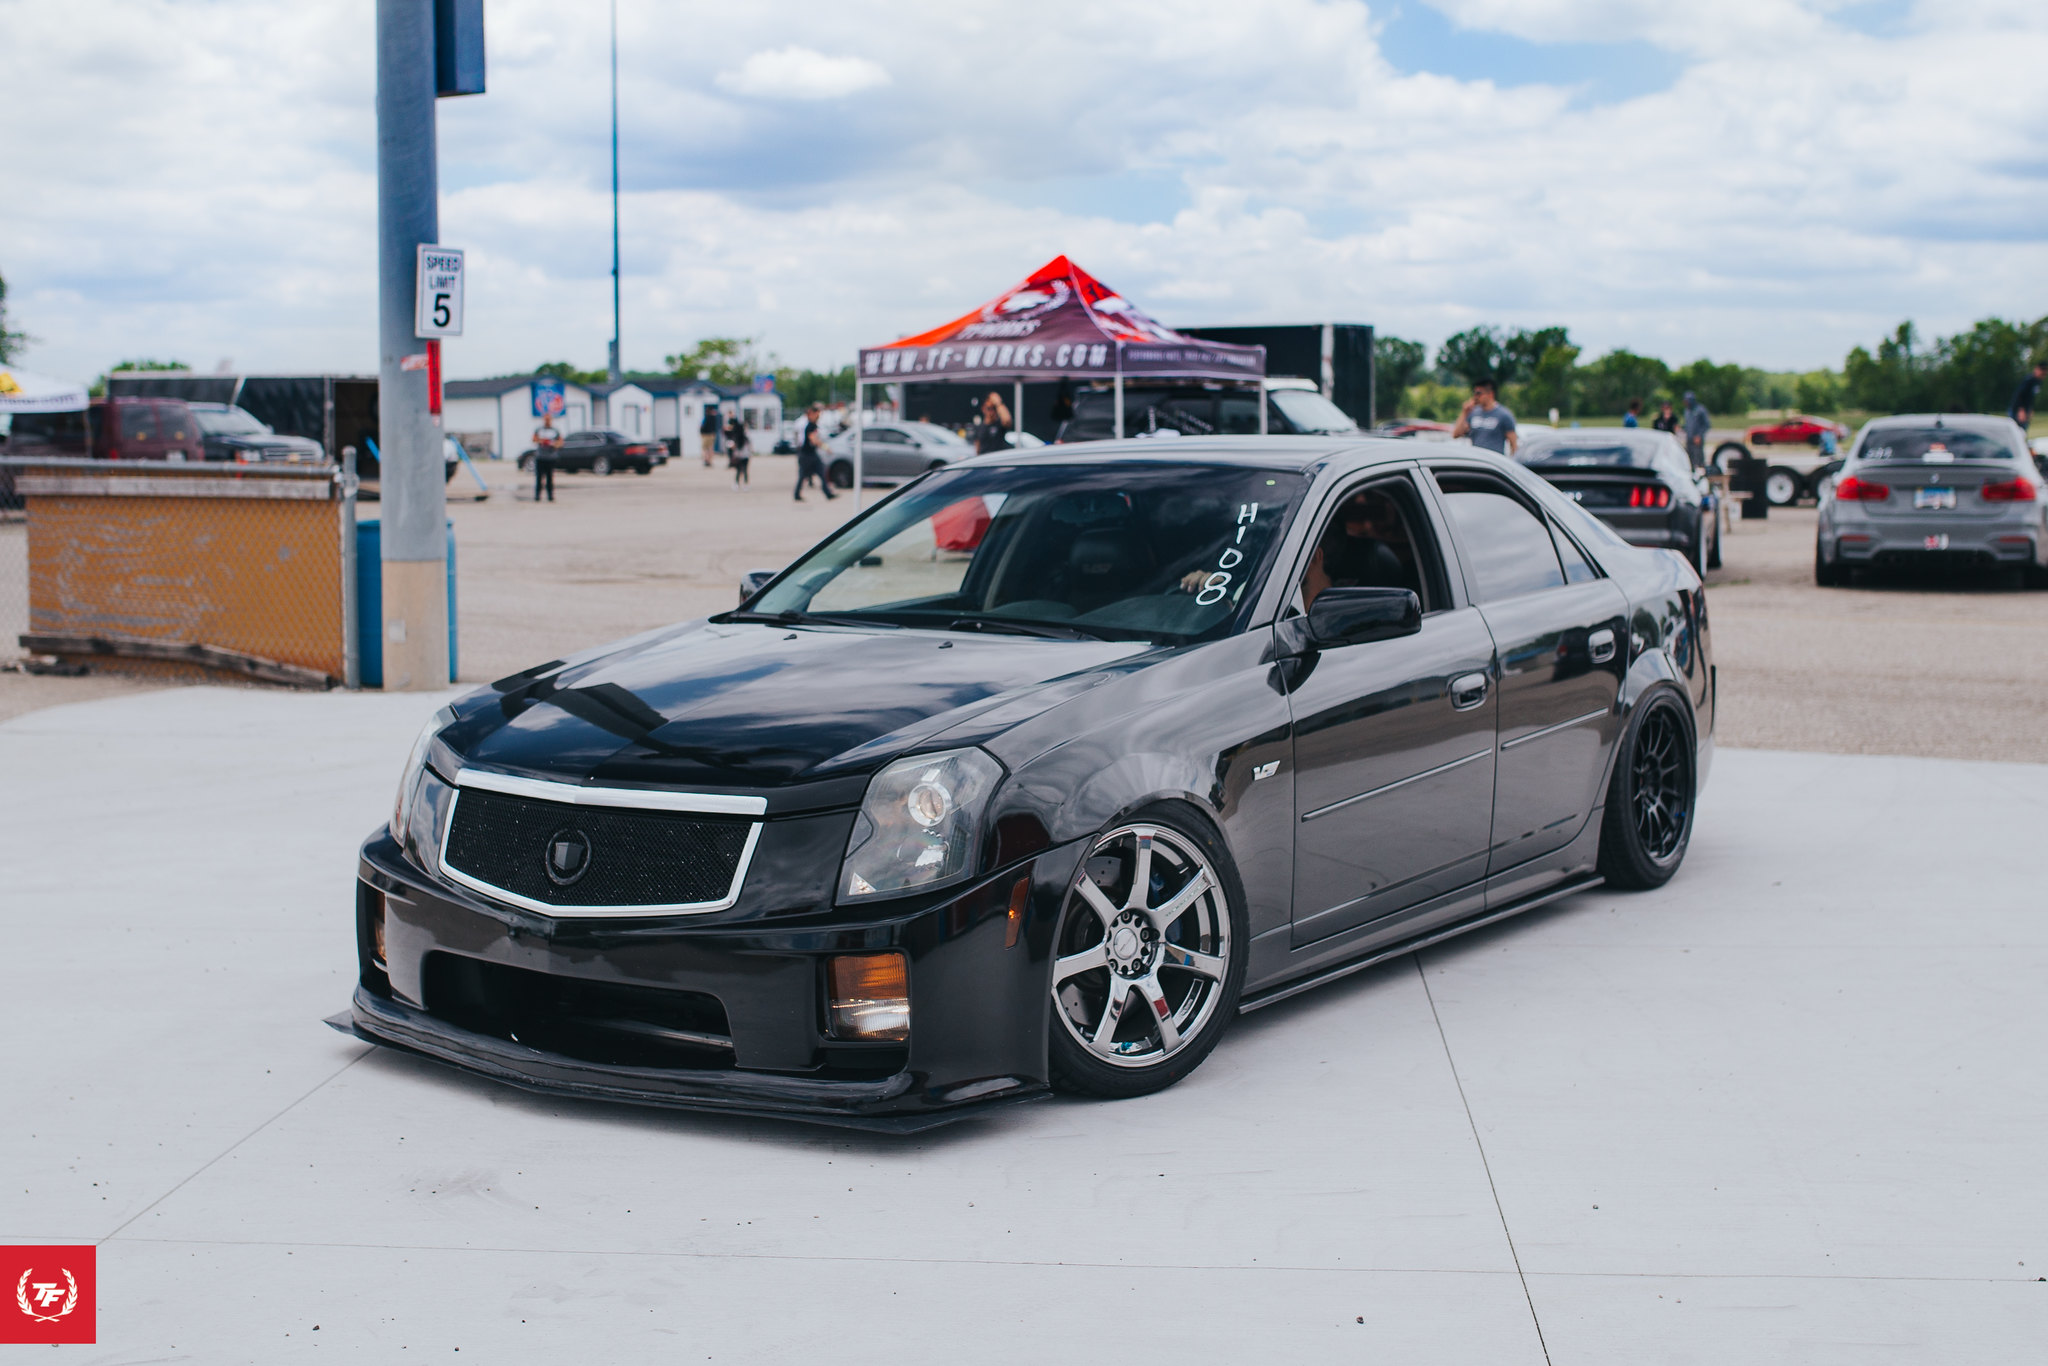 Machine Check(CTS-V) - Engine: 5.7 V8 LS6 oem configuration (400hp)Drivetrain: oem configuration w/SRX 3.90 LSDFootwork: Megan Racing coilovers (12kg/mm front and rear) creative steel bushings and adjustable linksAero: oem with personally customized front bumperWheels: Work emotion Xt7 18x8.5 +17 18x9.5 +27 235/40Interior: buddy club bucket seat